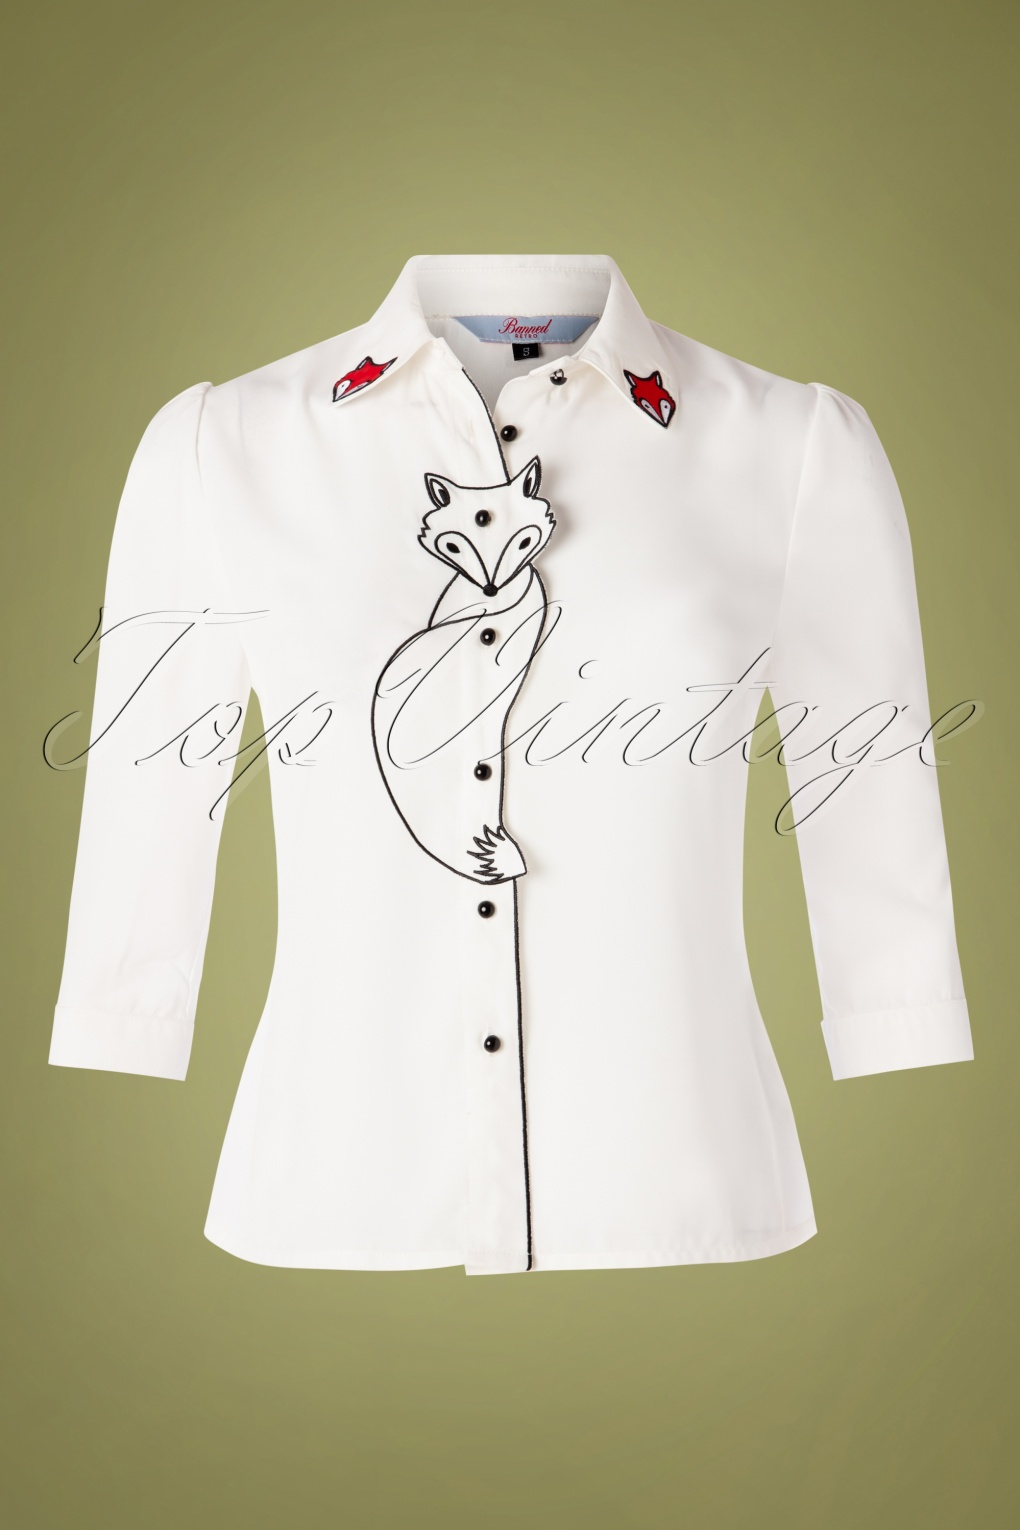 60s Shirts, T-shirt, Blouses, Hippie Shirts 60s Foxy Fox Blouse in Ivory White £34.09 AT vintagedancer.com